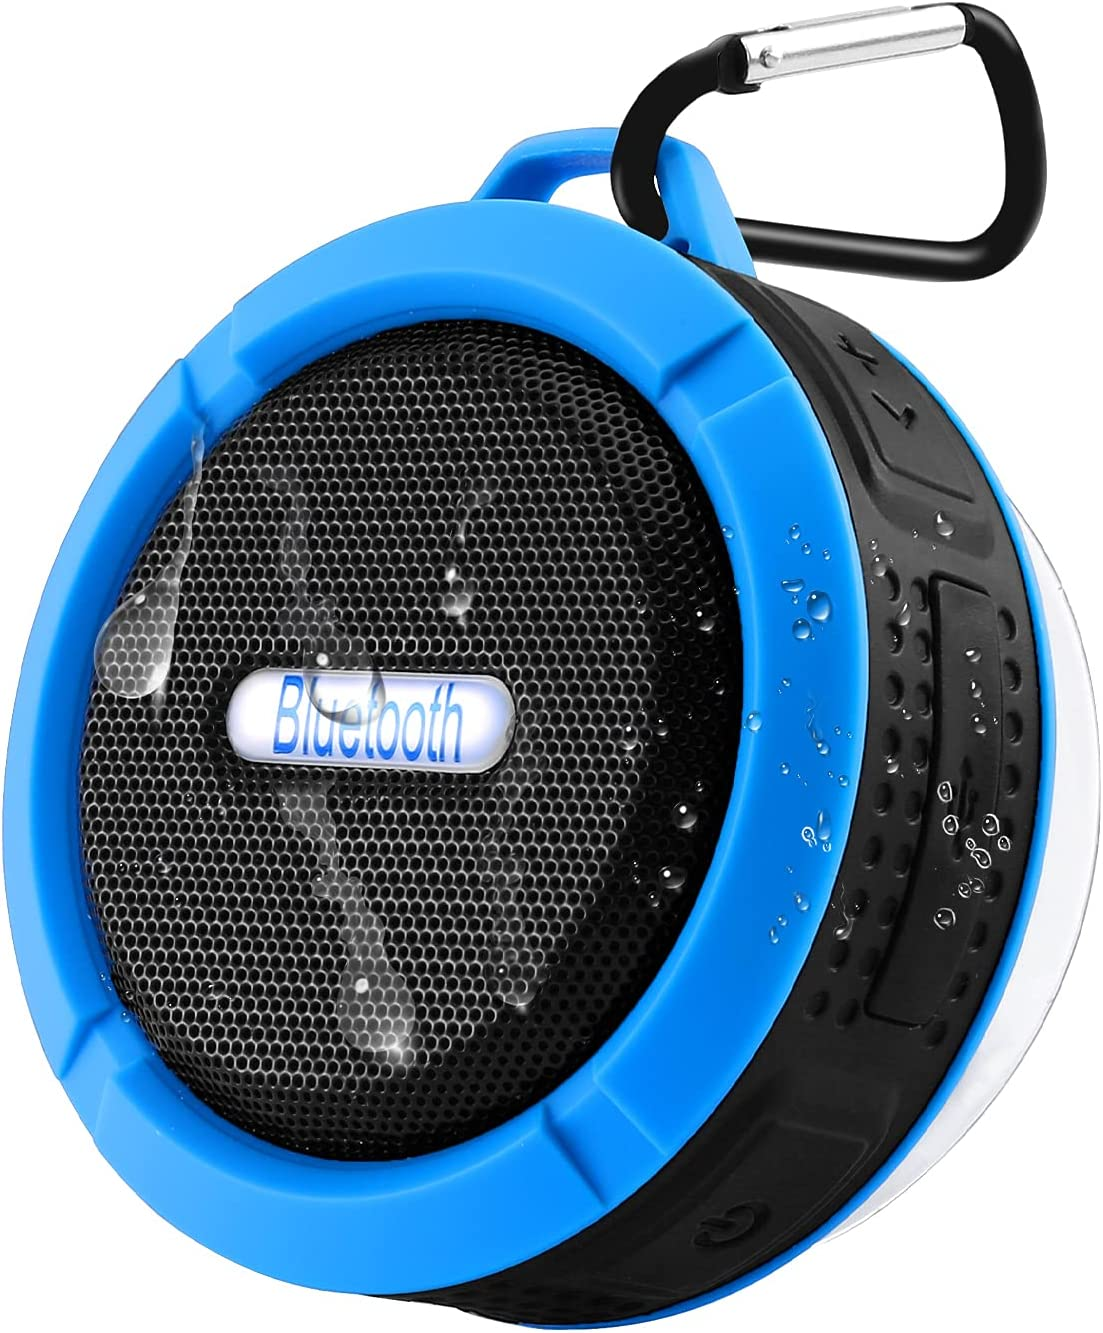 Waterproof Shower Speaker, Wireless Bluetooth Speaker, Portable Mini Hi-Fi Sound Speaker with Suction Cup, Enhanced Bass Loud HD Sound, 6H Playtime for Party, Bathroom, Travel, Home, and Outdoor